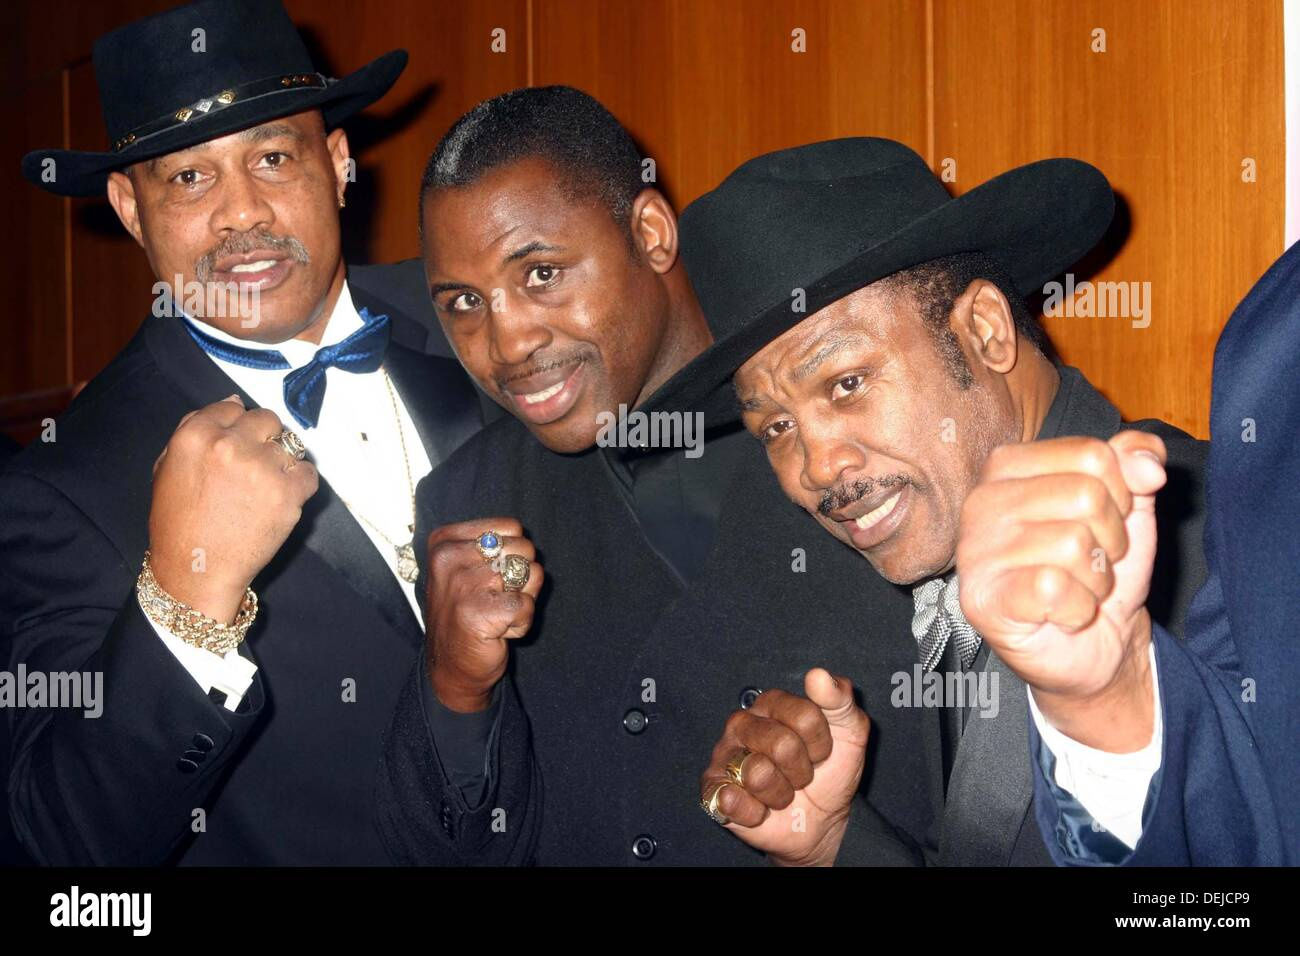 FILE PICS: September 18, 2013 - Kenneth Howard Norton Sr. (August 9, 1943 - September 18, 2013) was an American former heavyweight boxer and former WBC world Heavyweight Champion. He was best known for his 12-round victory over M. Ali, when he famously broke Ali's jaw, on March 31, 1973, becoming only the second man to defeat a peak Ali as a professional. PICTURED: Oct 10, 2004 - New York, New York, U.S. - From left, KEN NORTON, MARVIS FRAZIER, and JOE FRAZIER arrives at the first annual black tie gala F.I.S.T. Fights for New York. Credit:  ZUMA Press, Inc./Alamy Live News - Stock Image